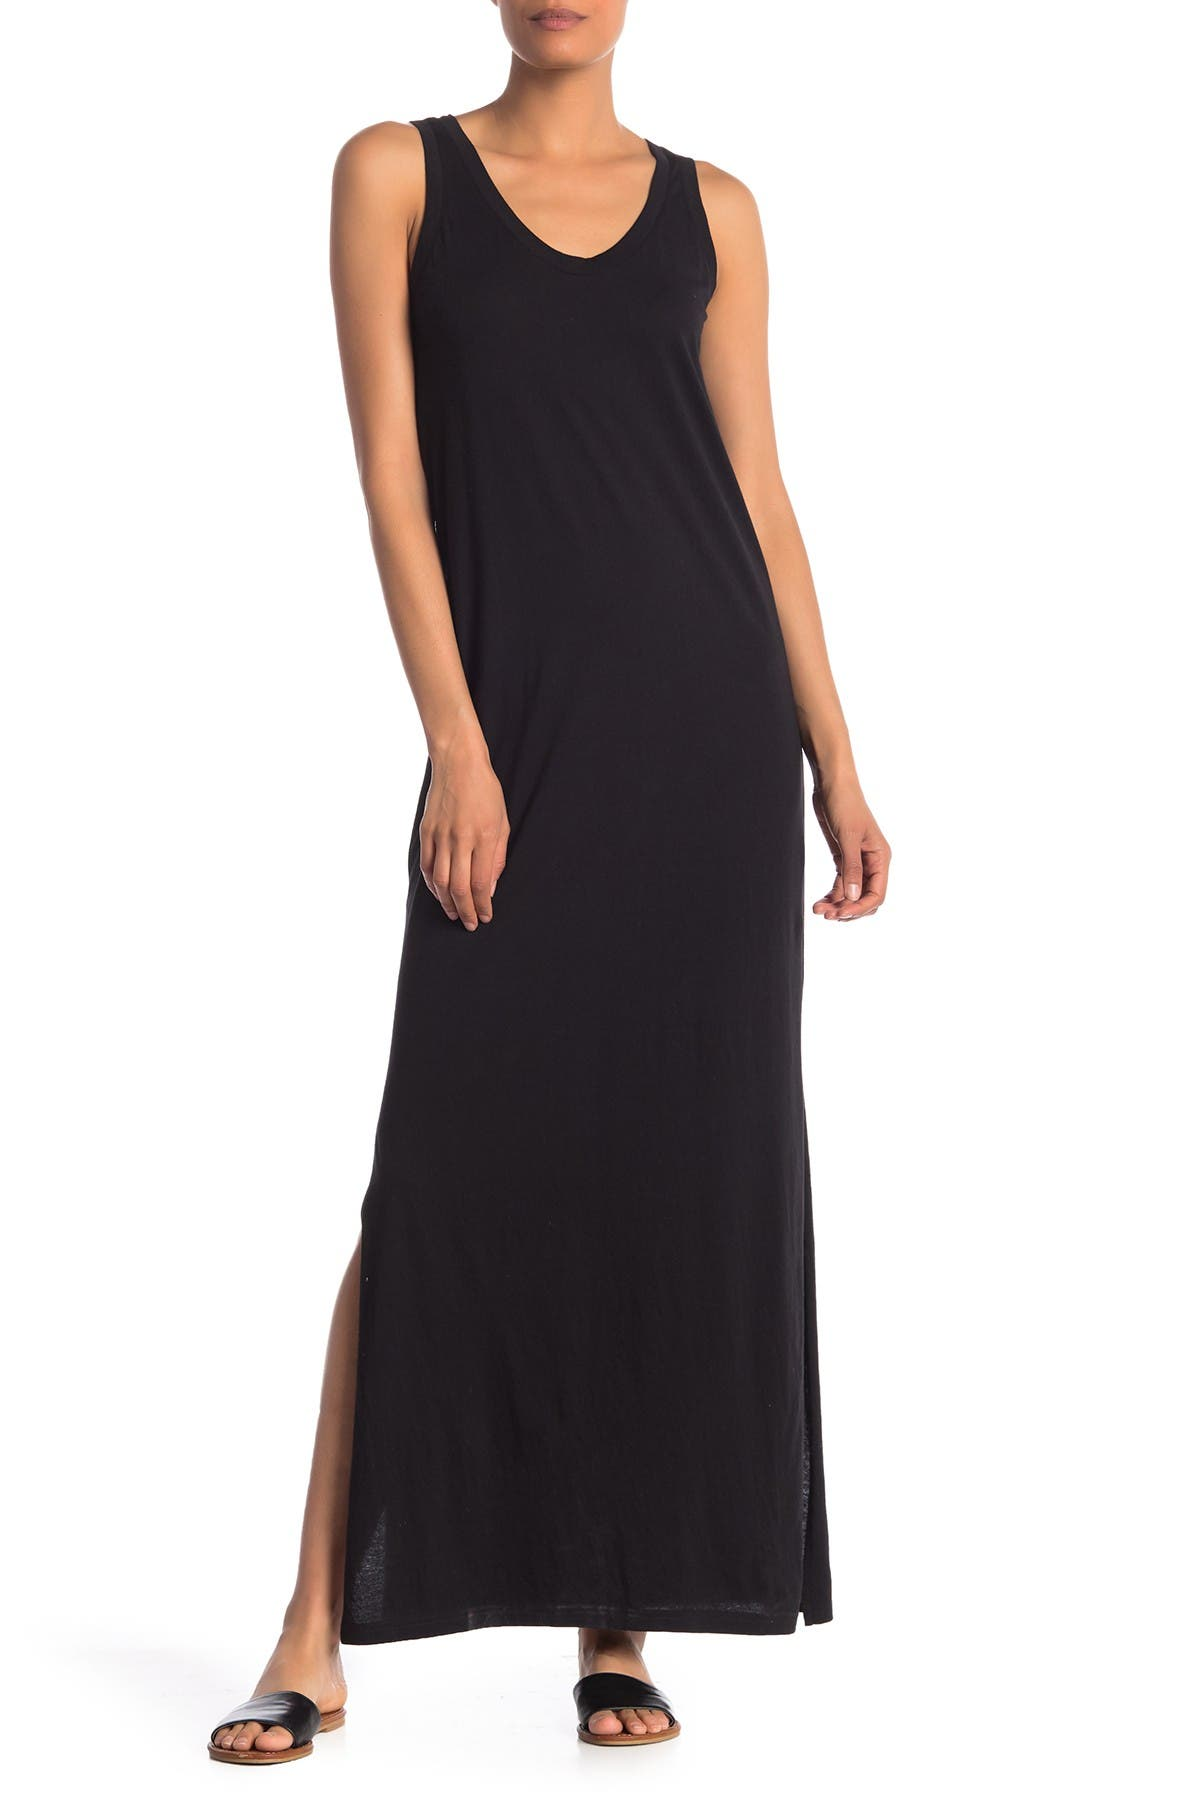 Image of SUSINA Cinch Back Maxi Dress